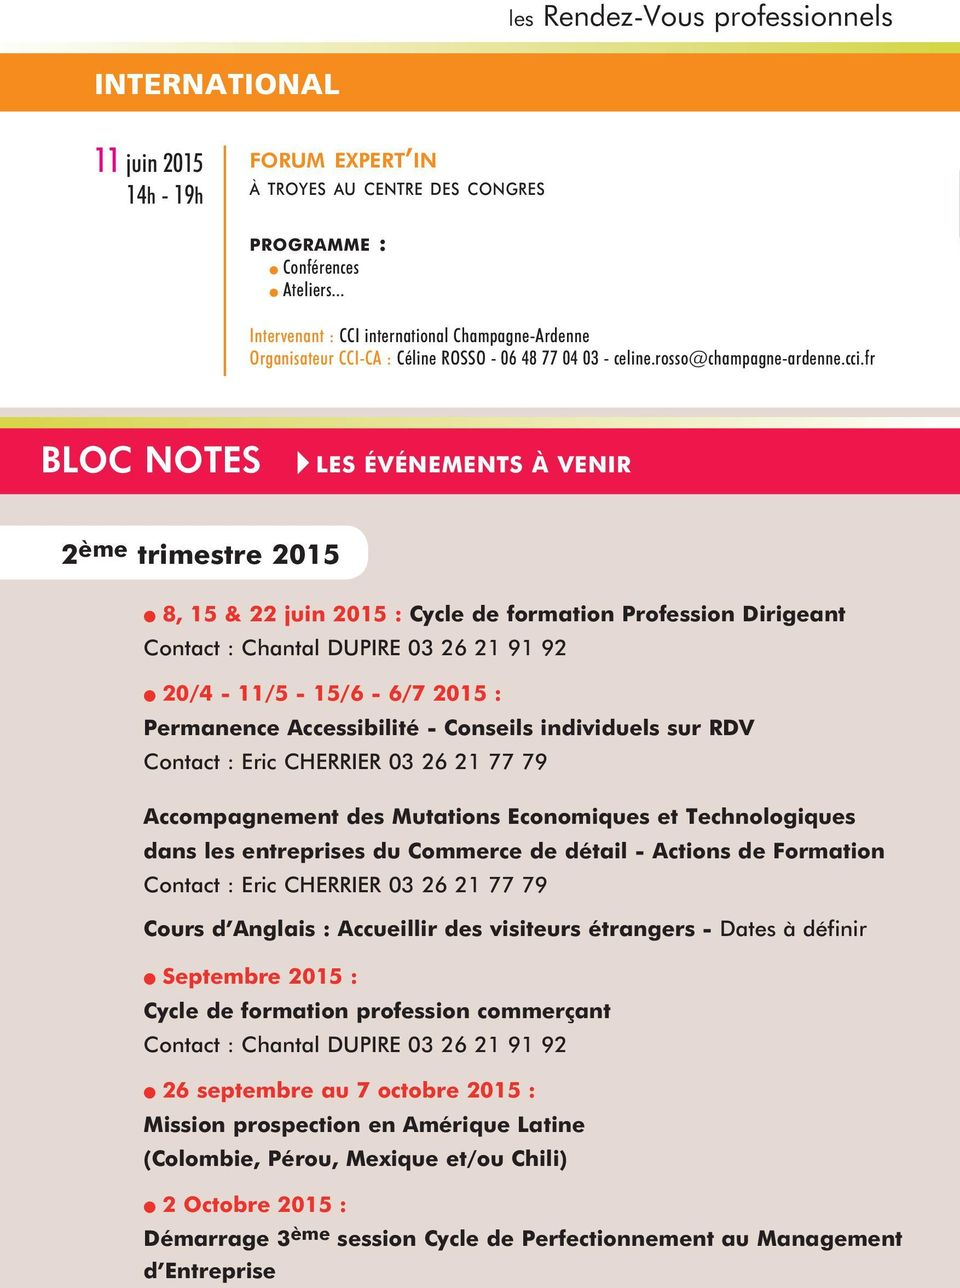 fr bloc notes les événements à venir 2 ème trimestre 2015 8, 15 & 22 juin 2015 : cycle de formation profession dirigeant Contact : Chantal DupIre 03 26 21 91 92 20/4-11/5-15/6-6/7 2015 : permanence